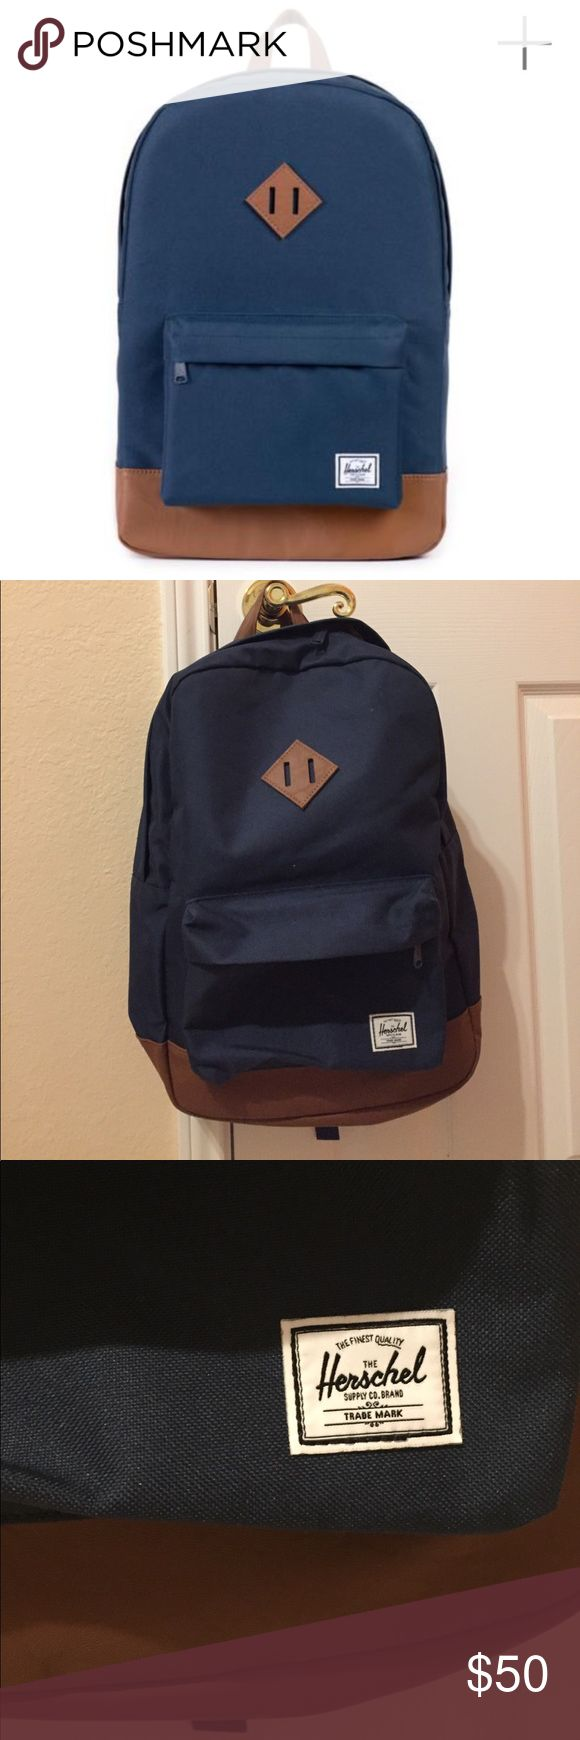 New Herschel Heritage Backpack New Herschel navy blue Heritage backpack. Never worn but no tags. No trades, sorry! Make me an offer! 😊 Herschel Supply Company Bags Backpacks